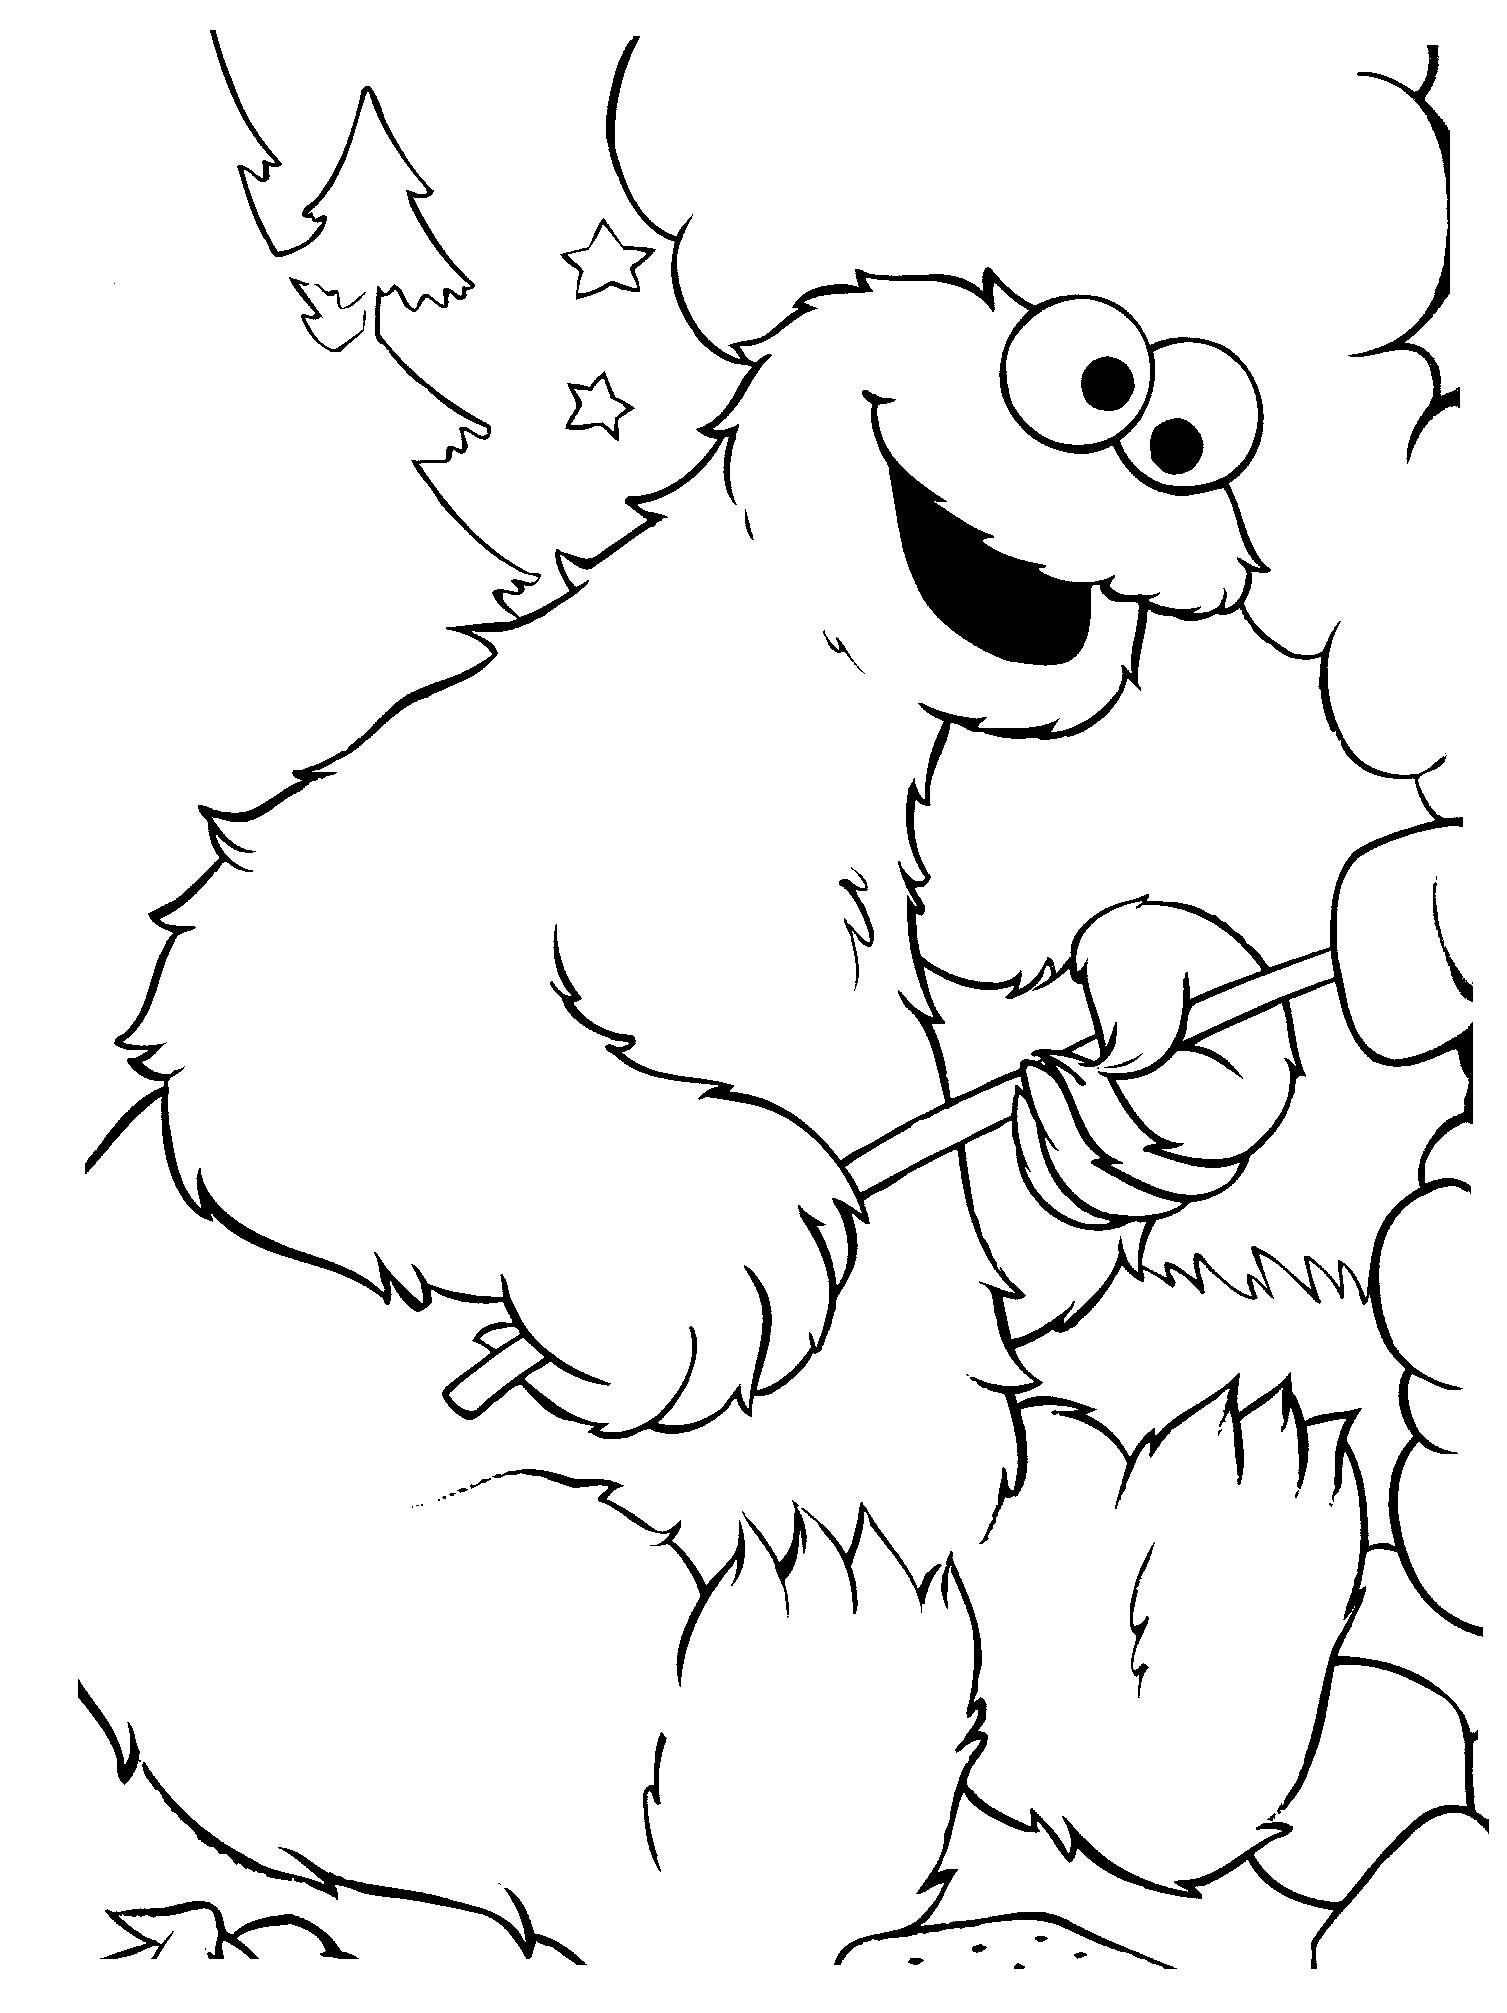 Cookie Monster Toasting Marshmallows Coloring Pages Monster Coloring Pages Coloring Pages Elmo Coloring Pages